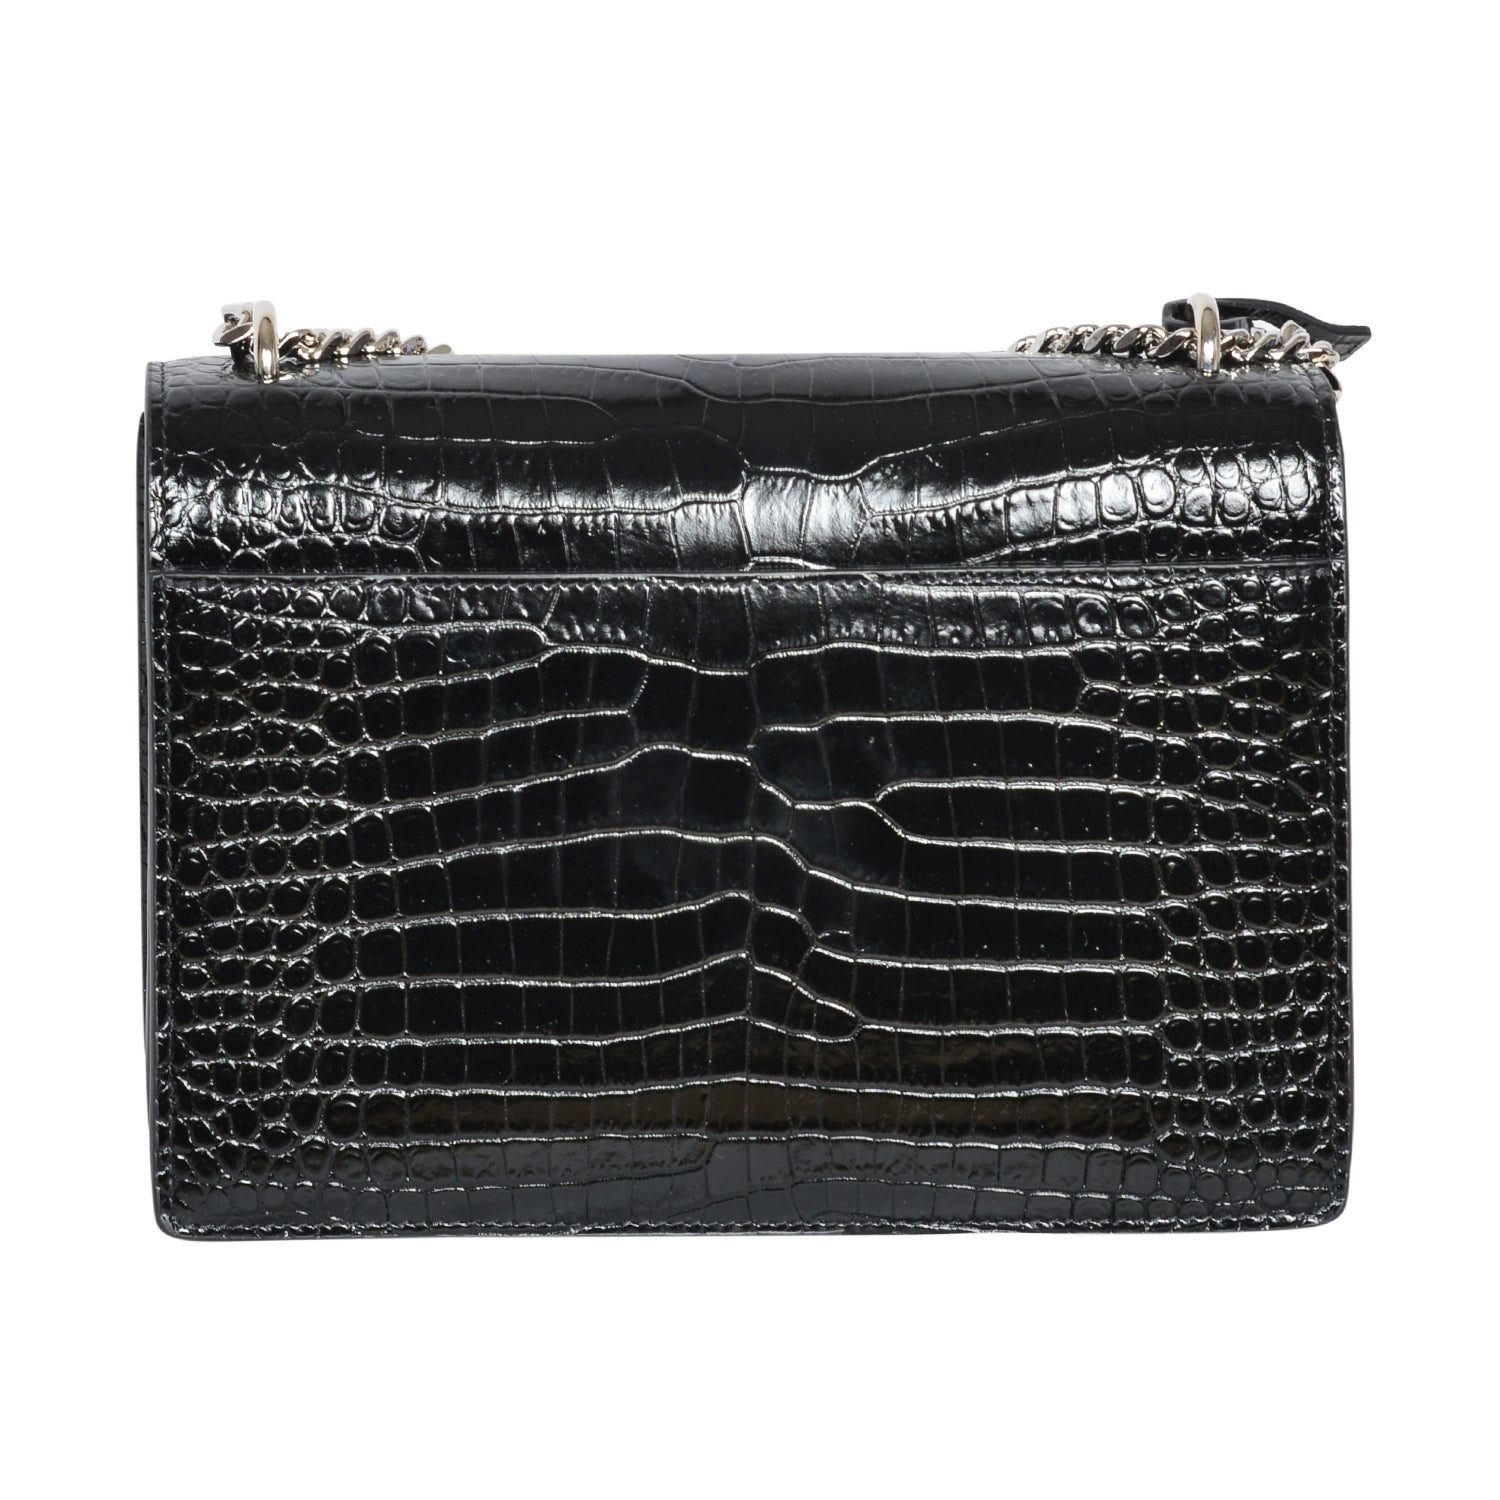 Yves Saint Laurent Crocodile Sunset Handbag